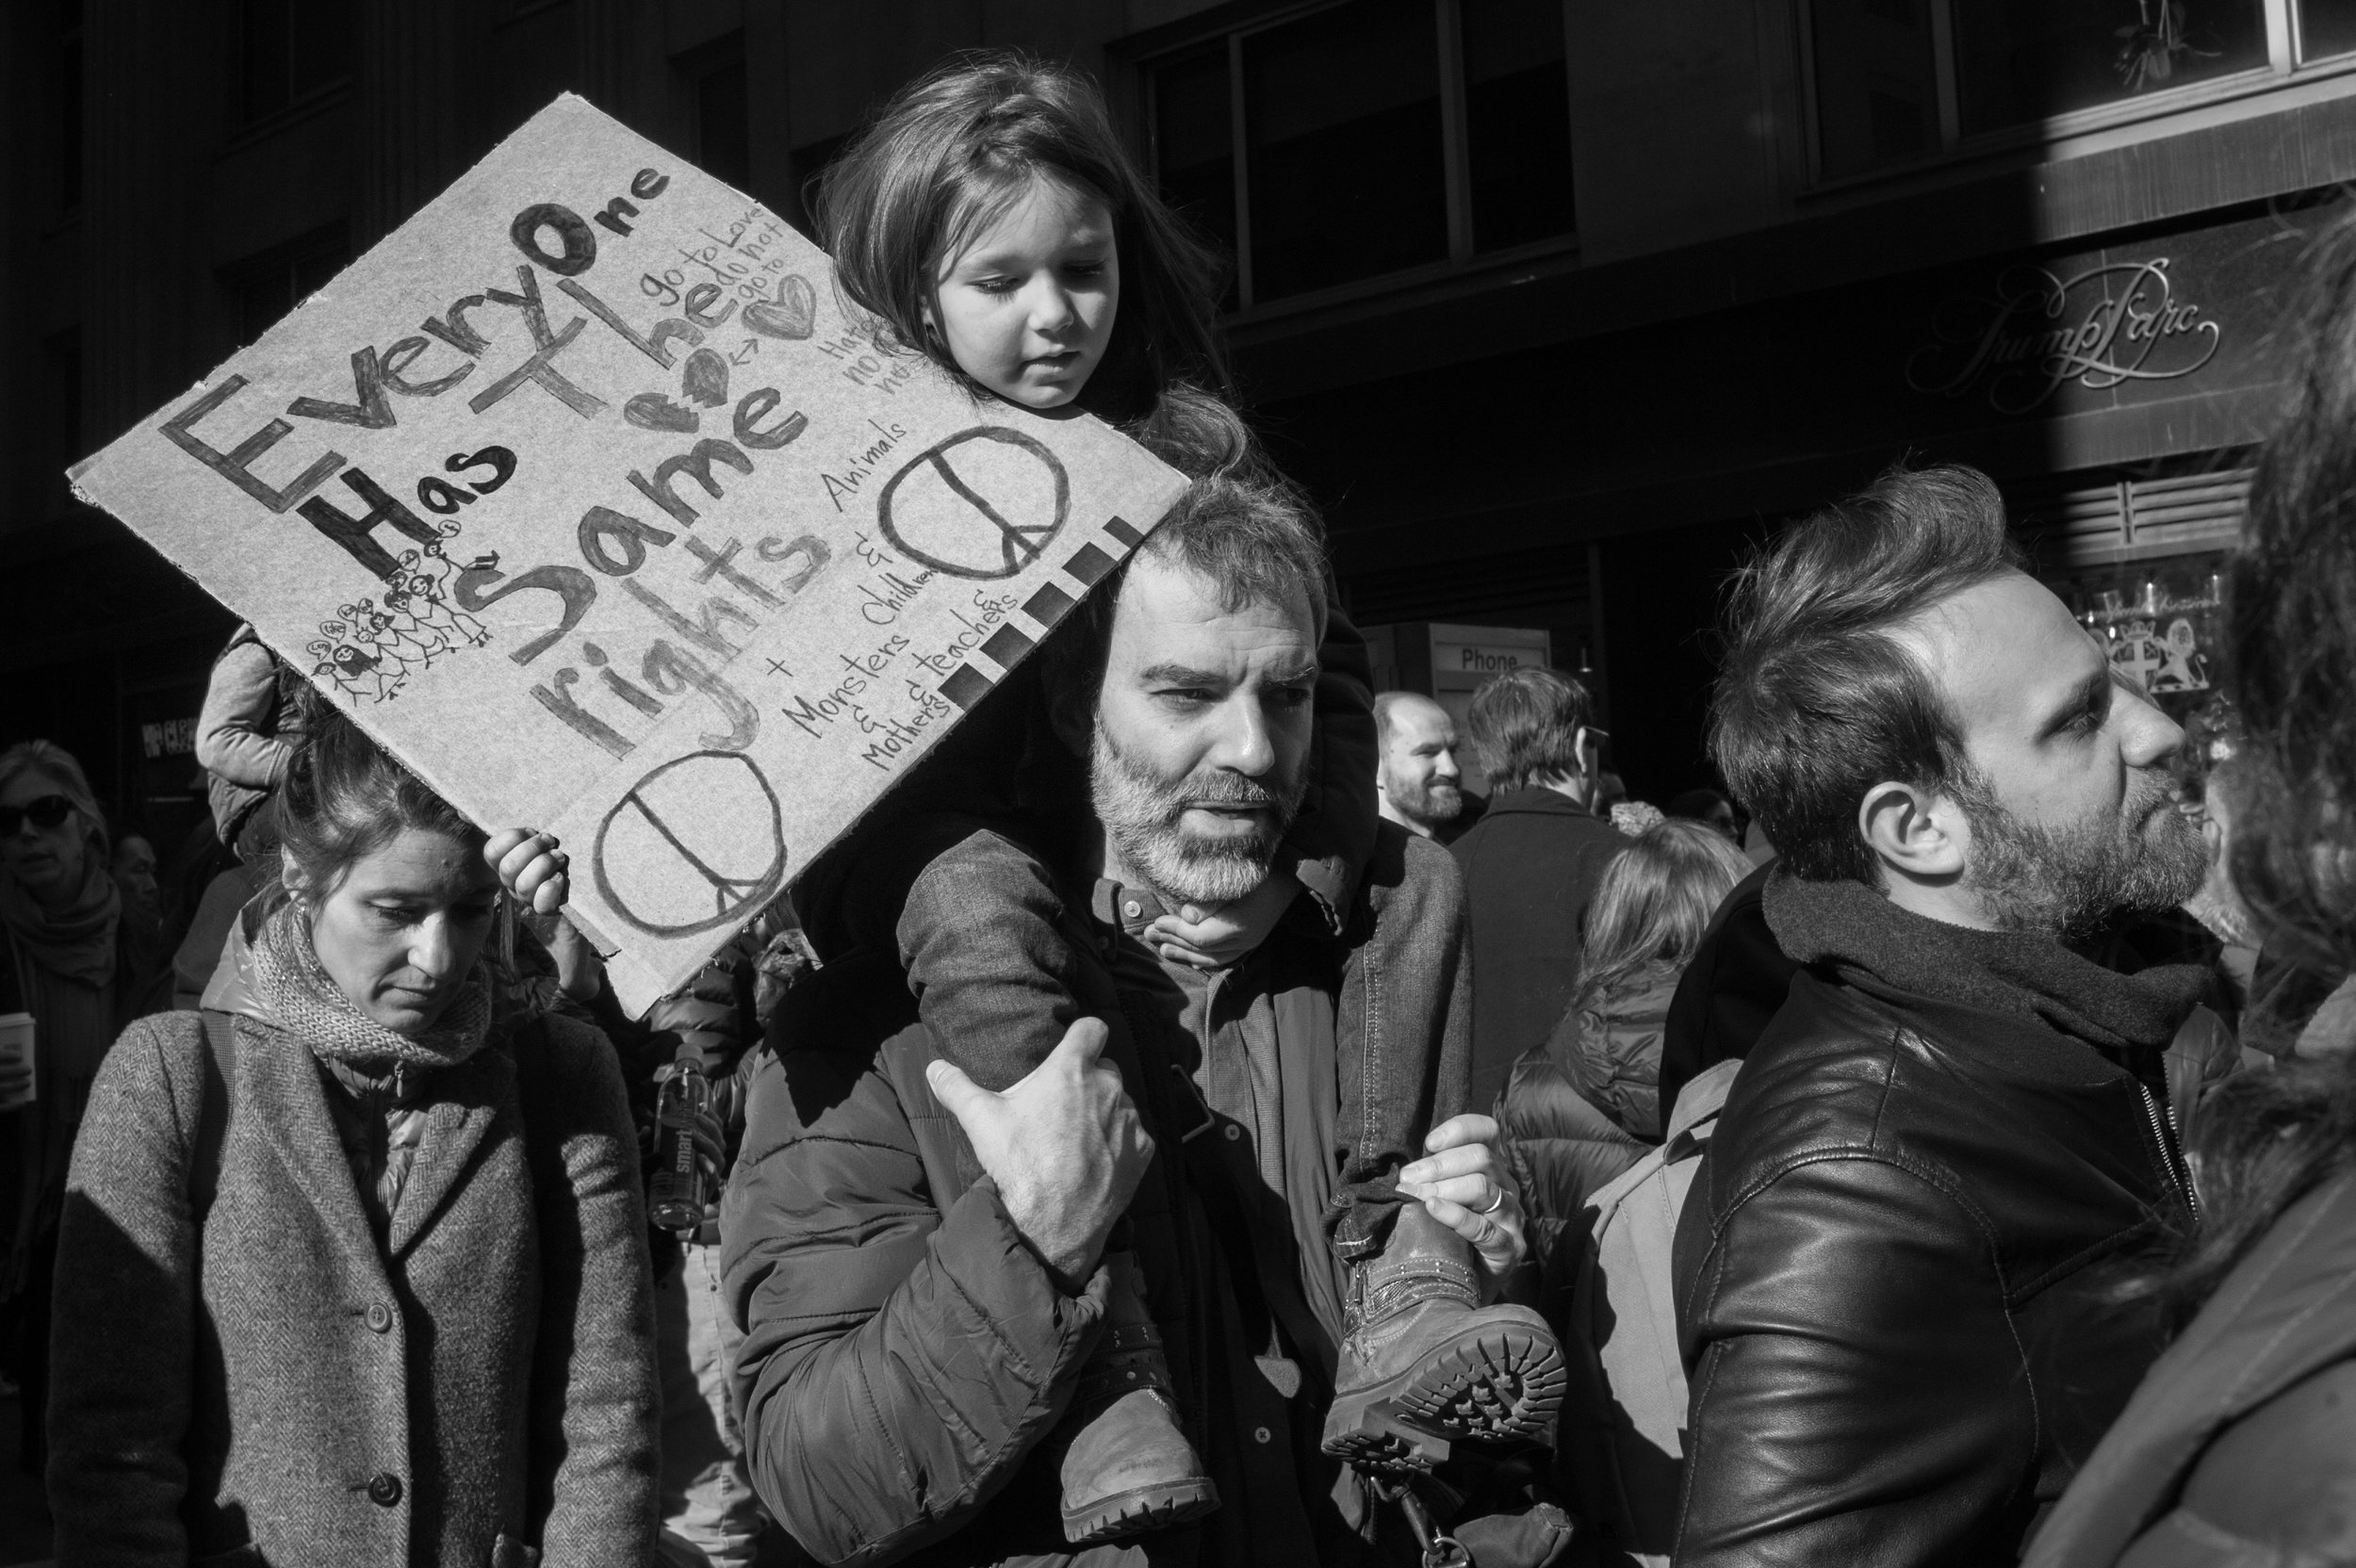 Girl and Father Protesting